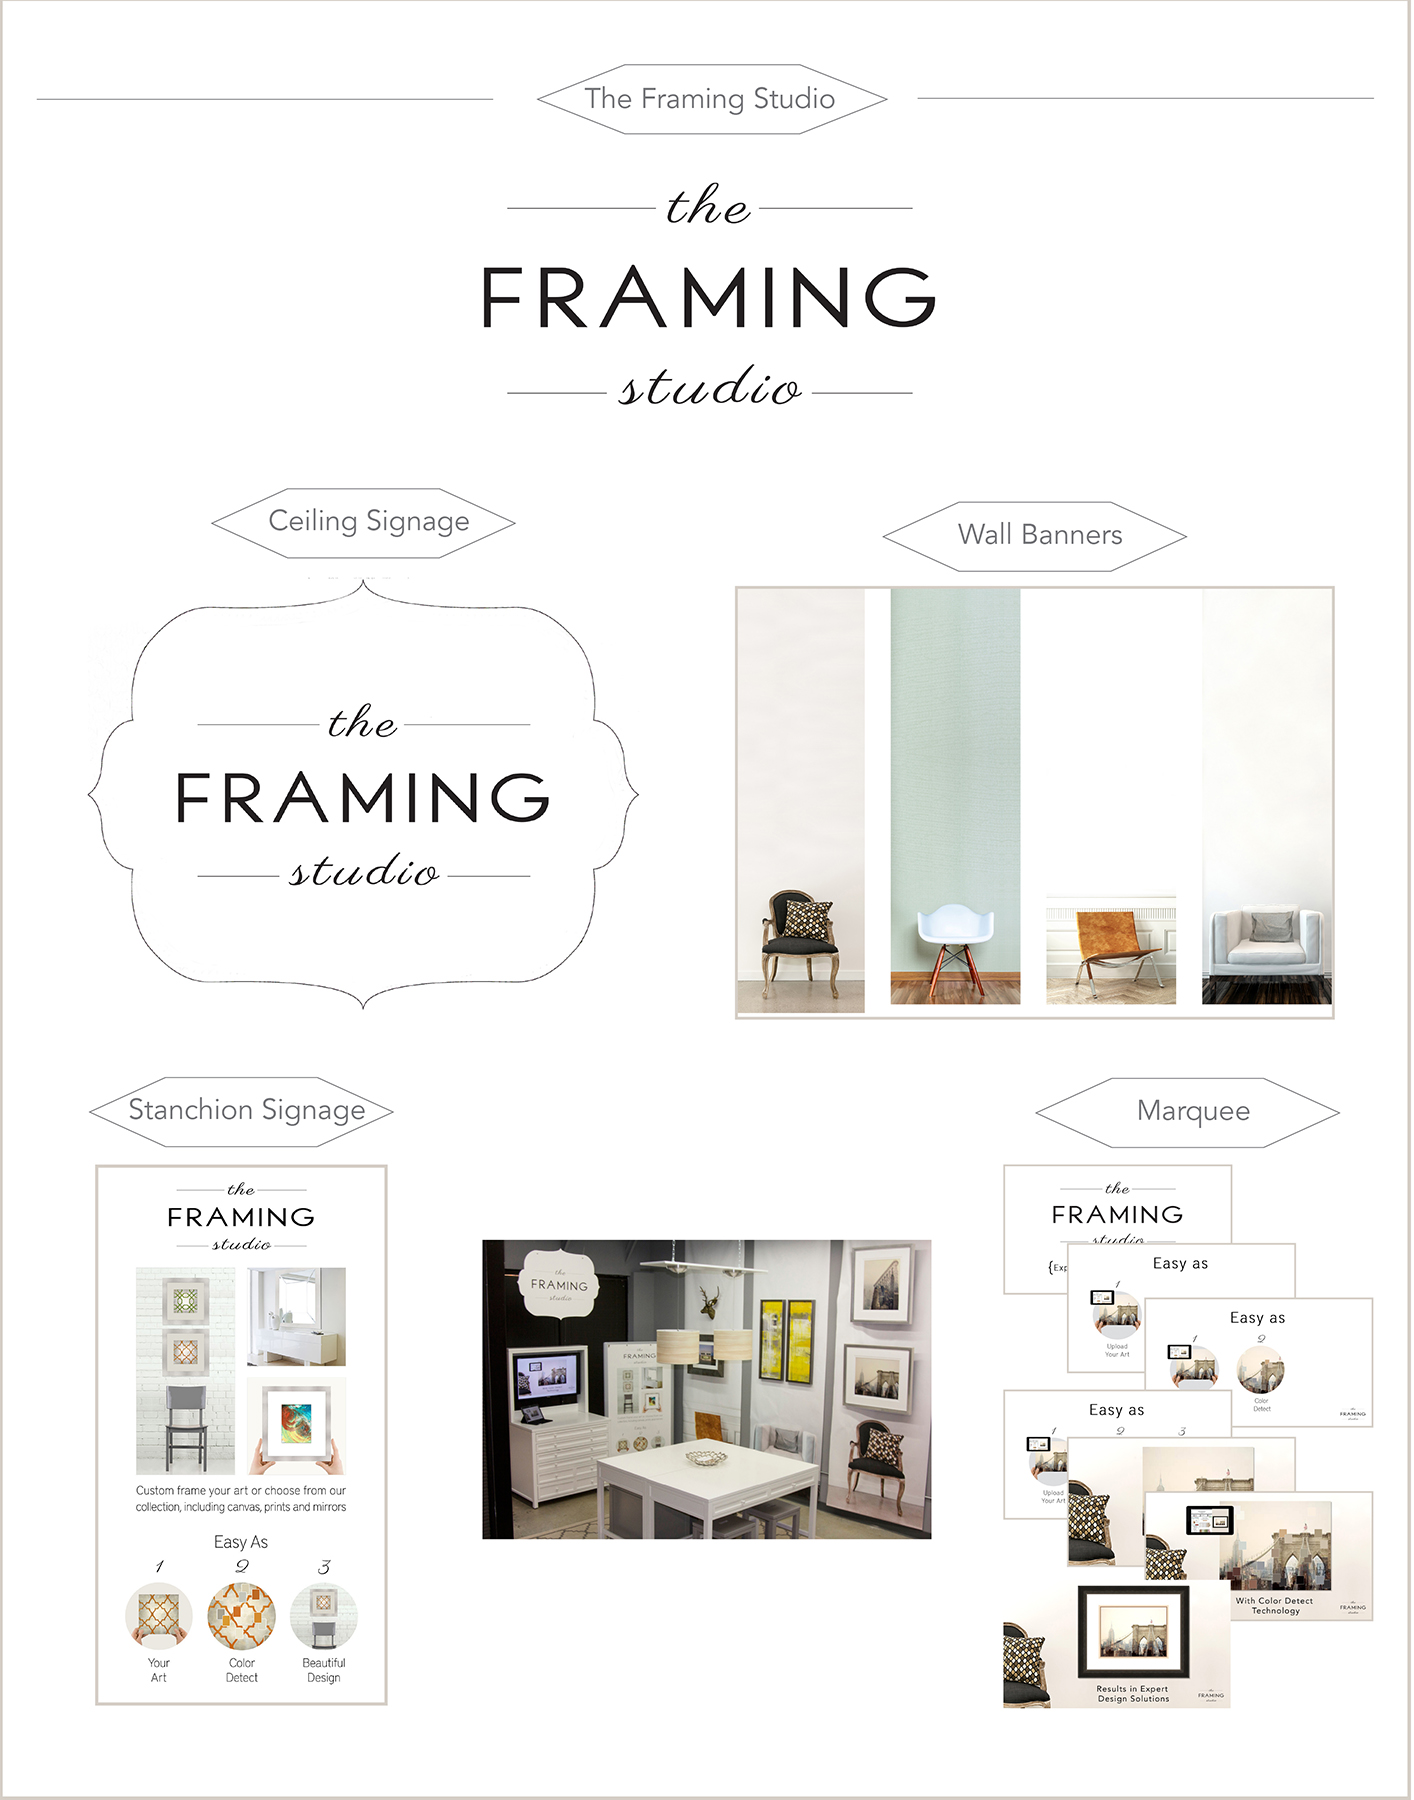 Logo, Signage & Marquee: The Framing Studio